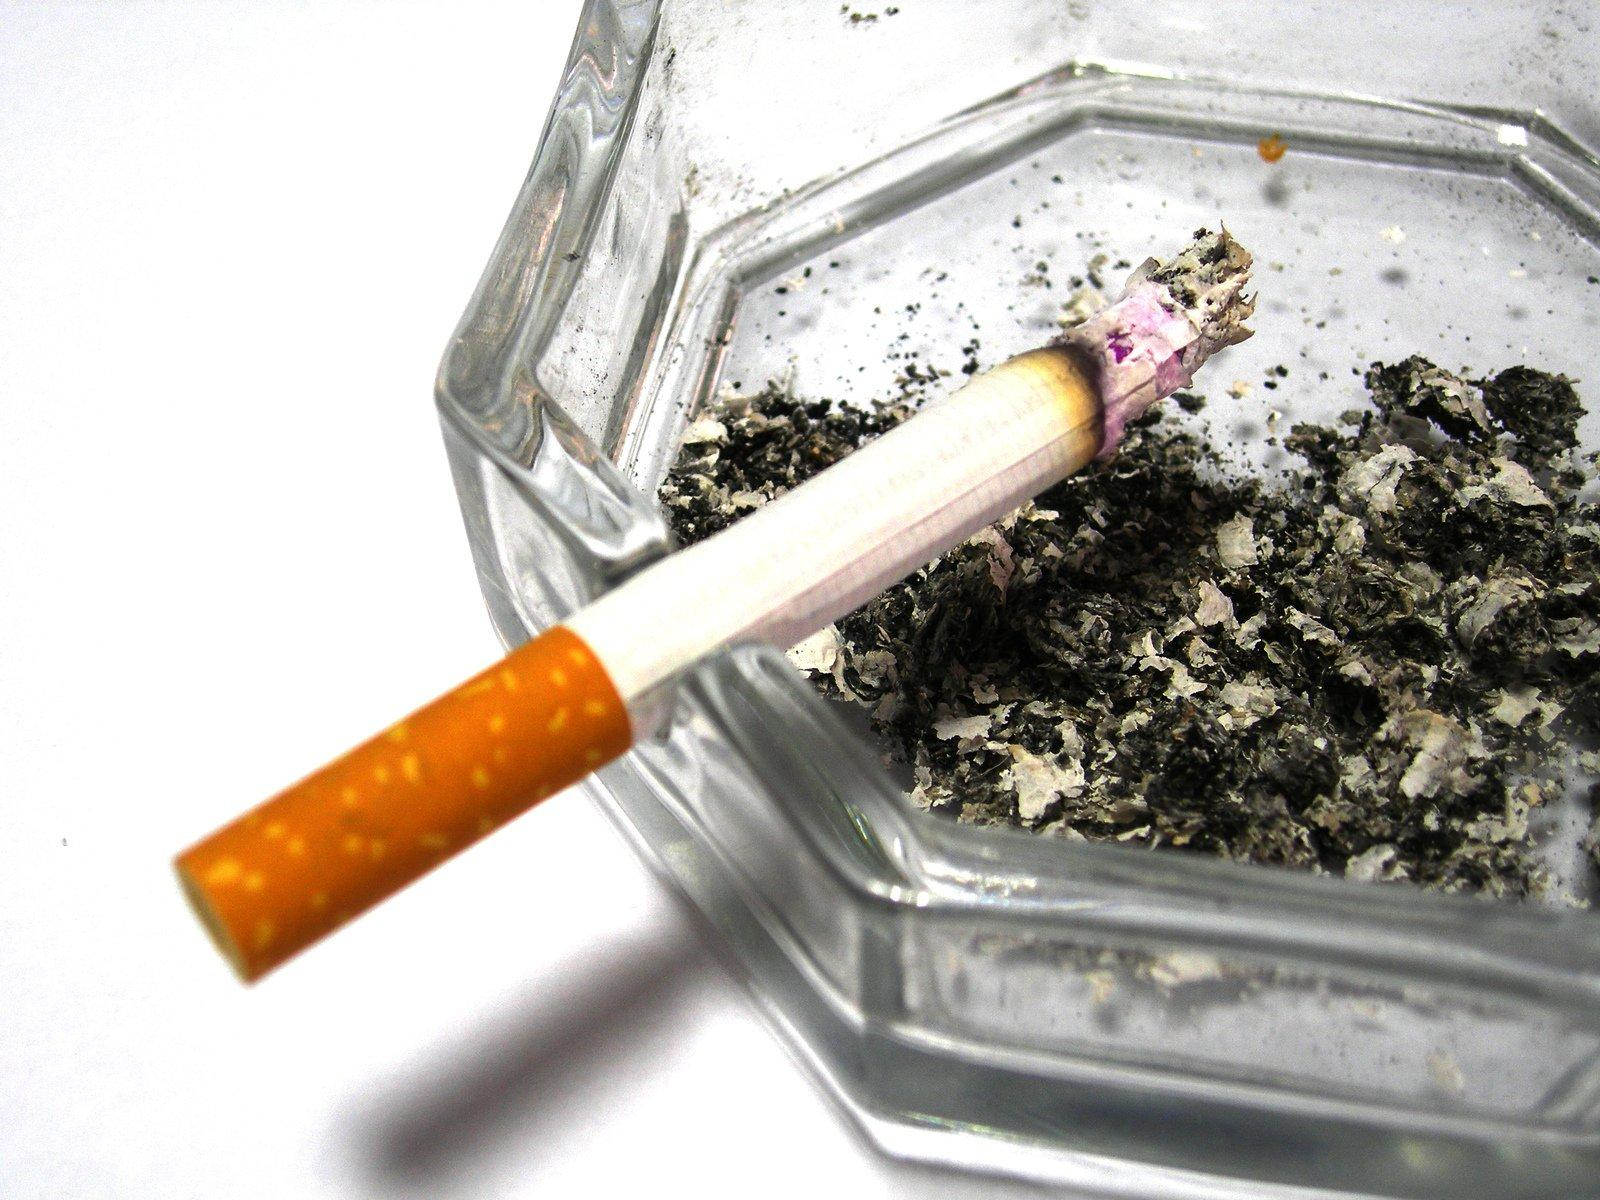 New York state poised to raise smoking age from 18 to 21